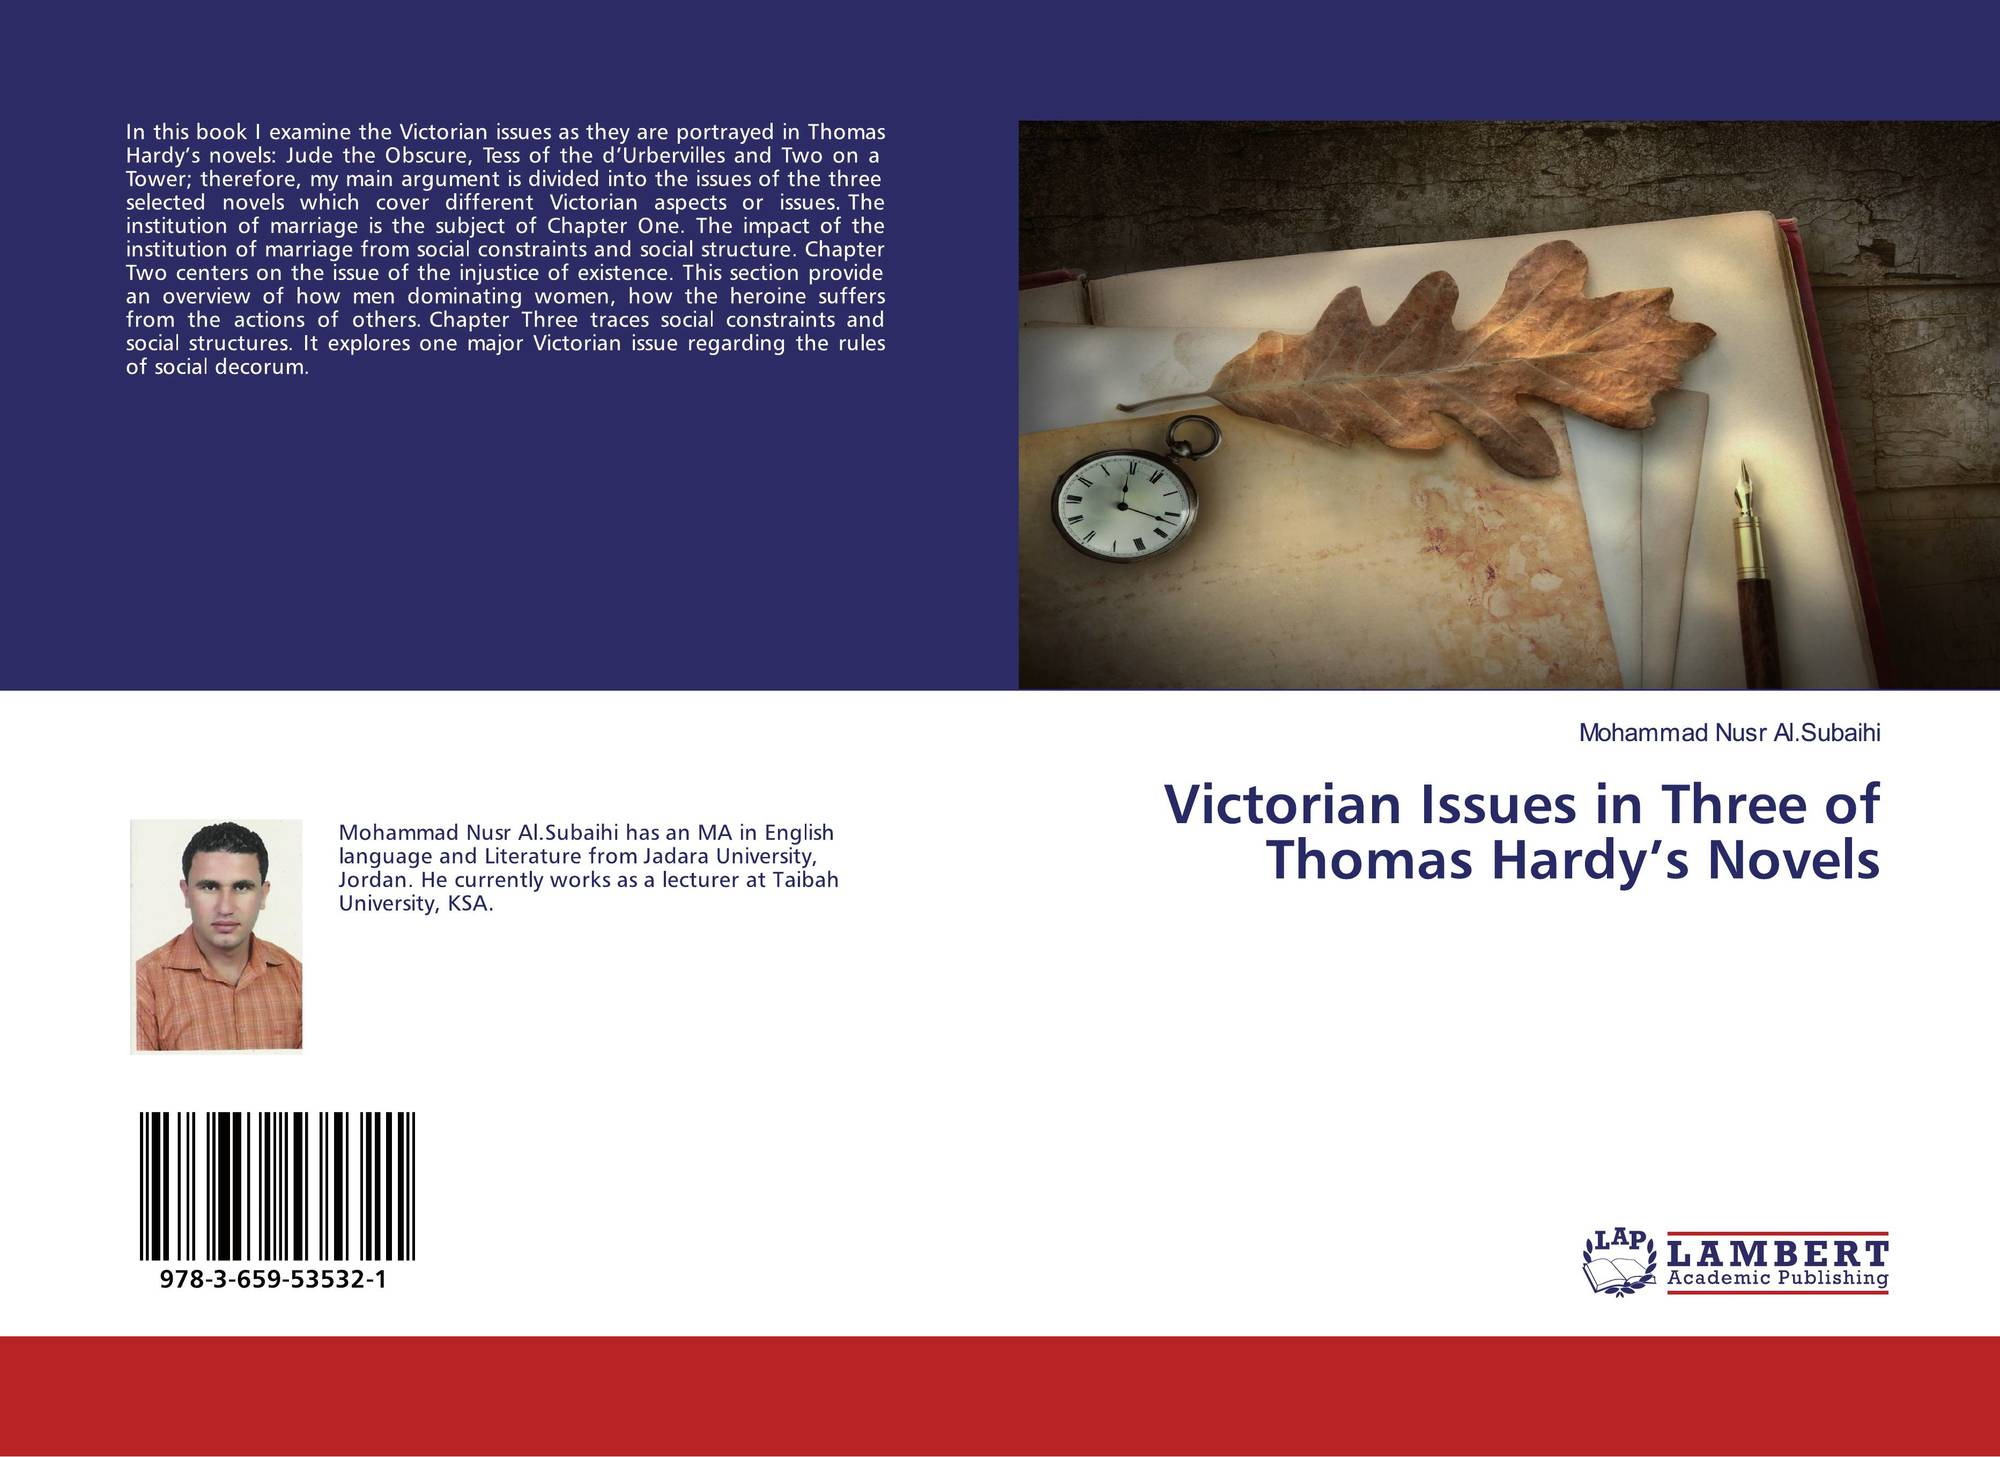 the portrayal of the victorian period novel in great expectations